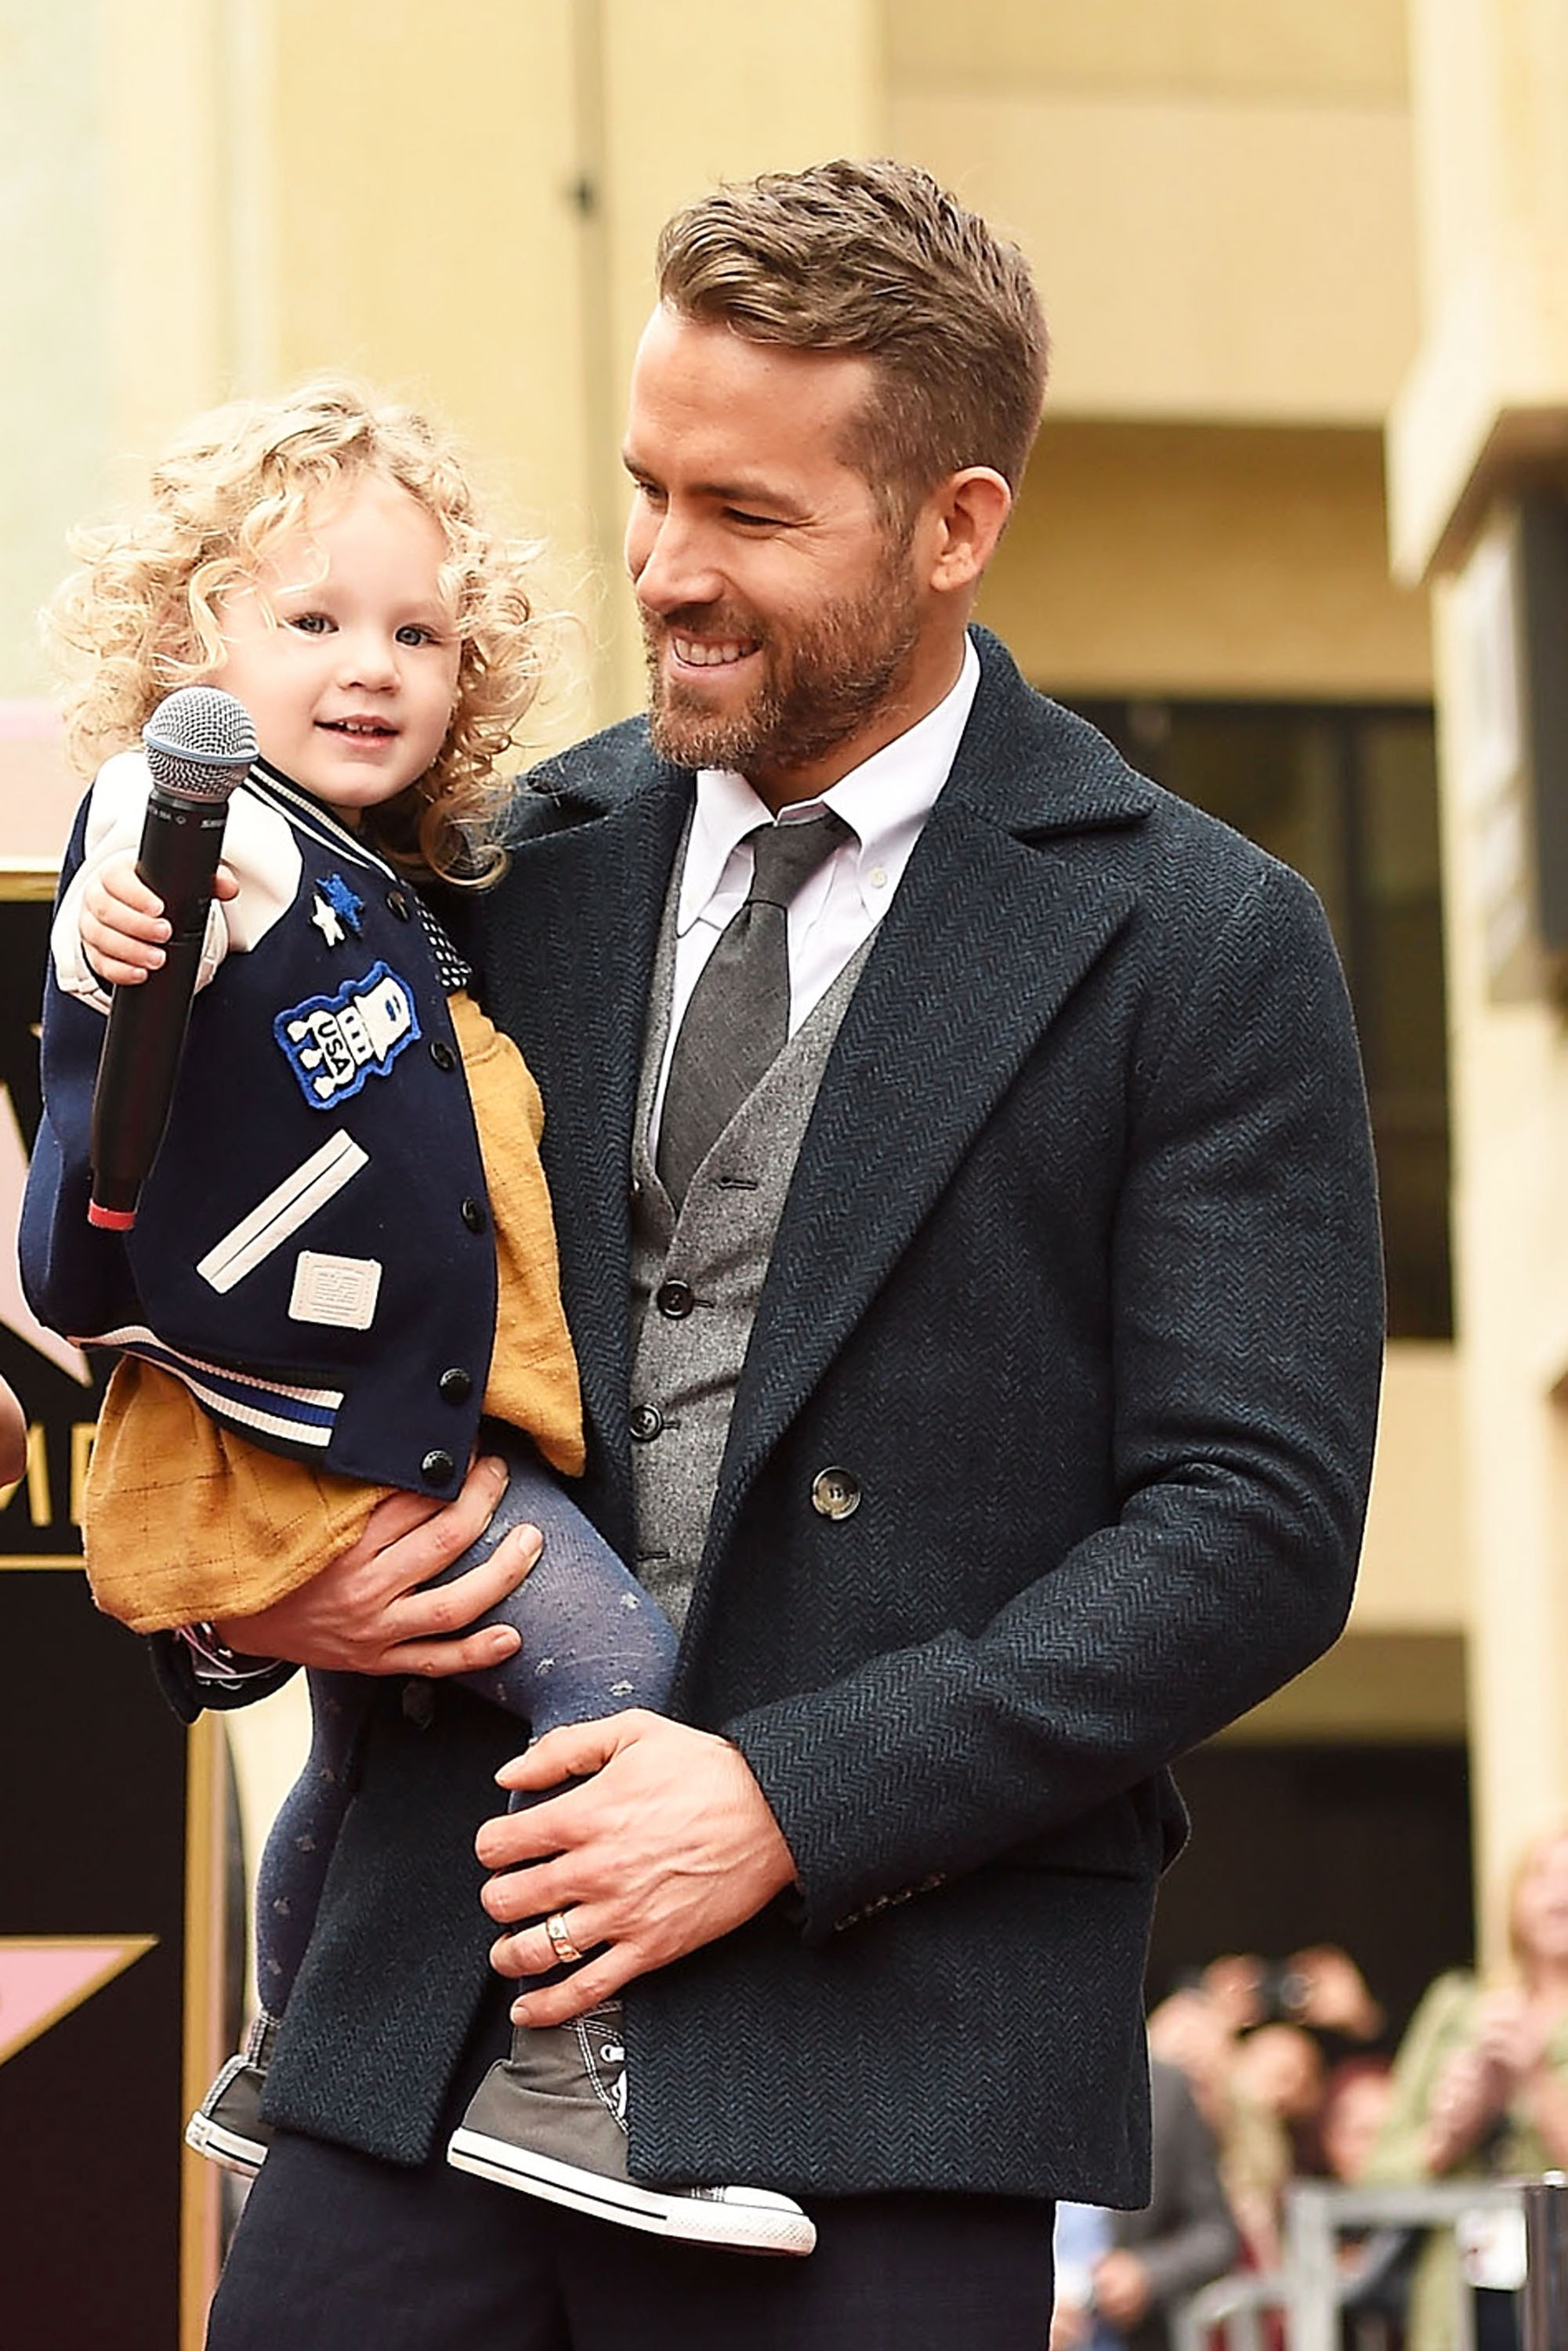 WATCH: Ryan Reynolds REVEALS daughter James Reynolds wants to be an actor: Showbiz is not good for kids